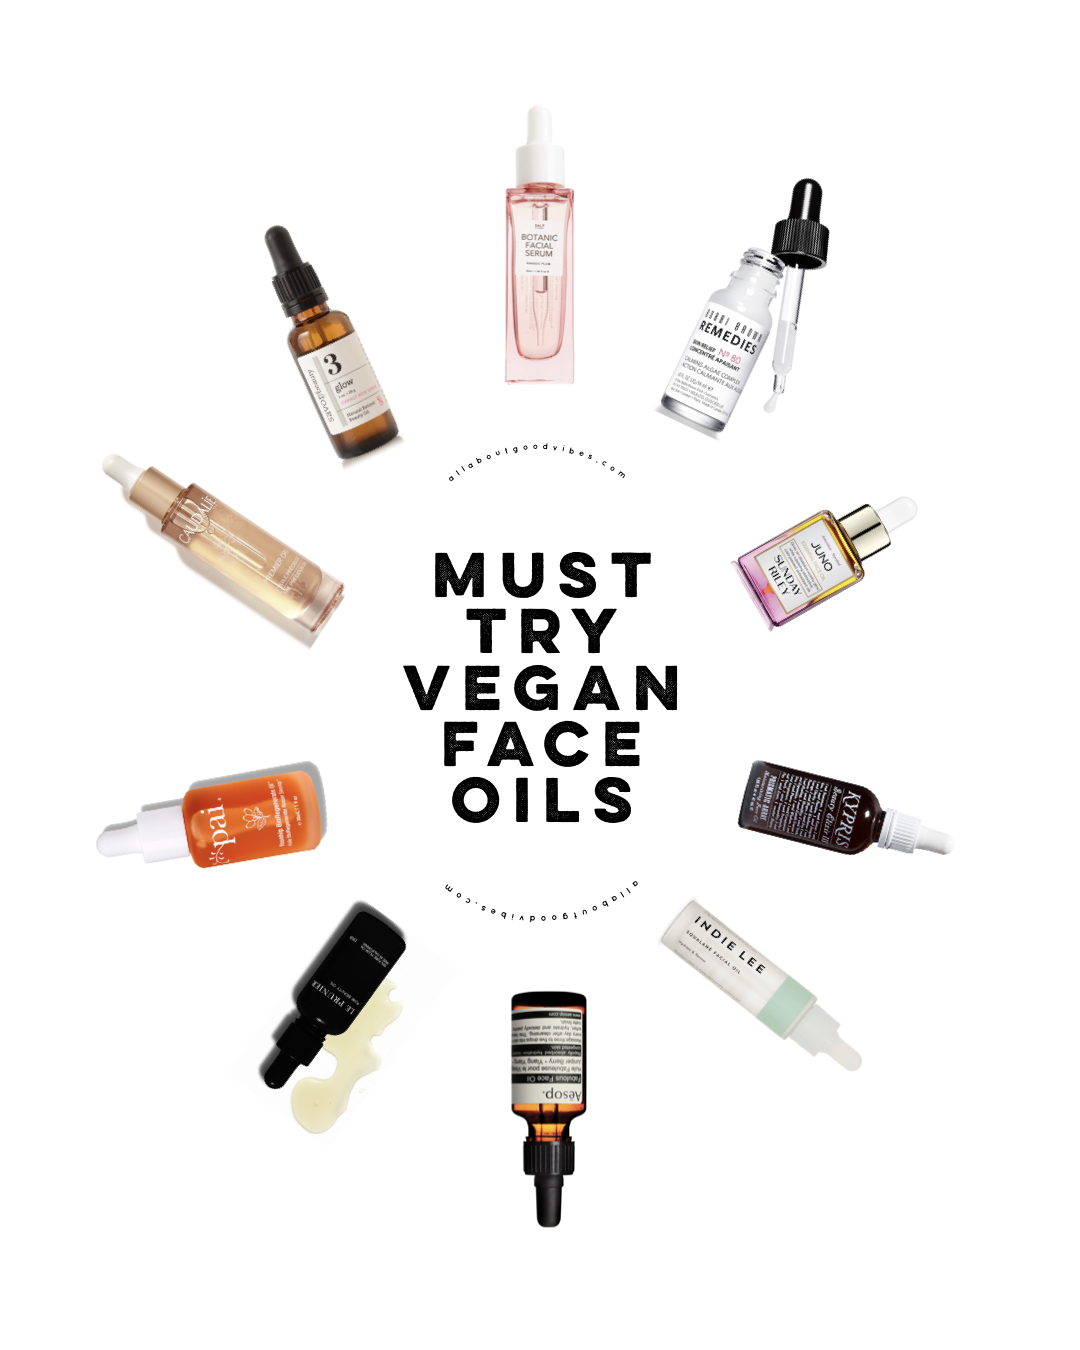 10 Must Try Vegan Face Oils